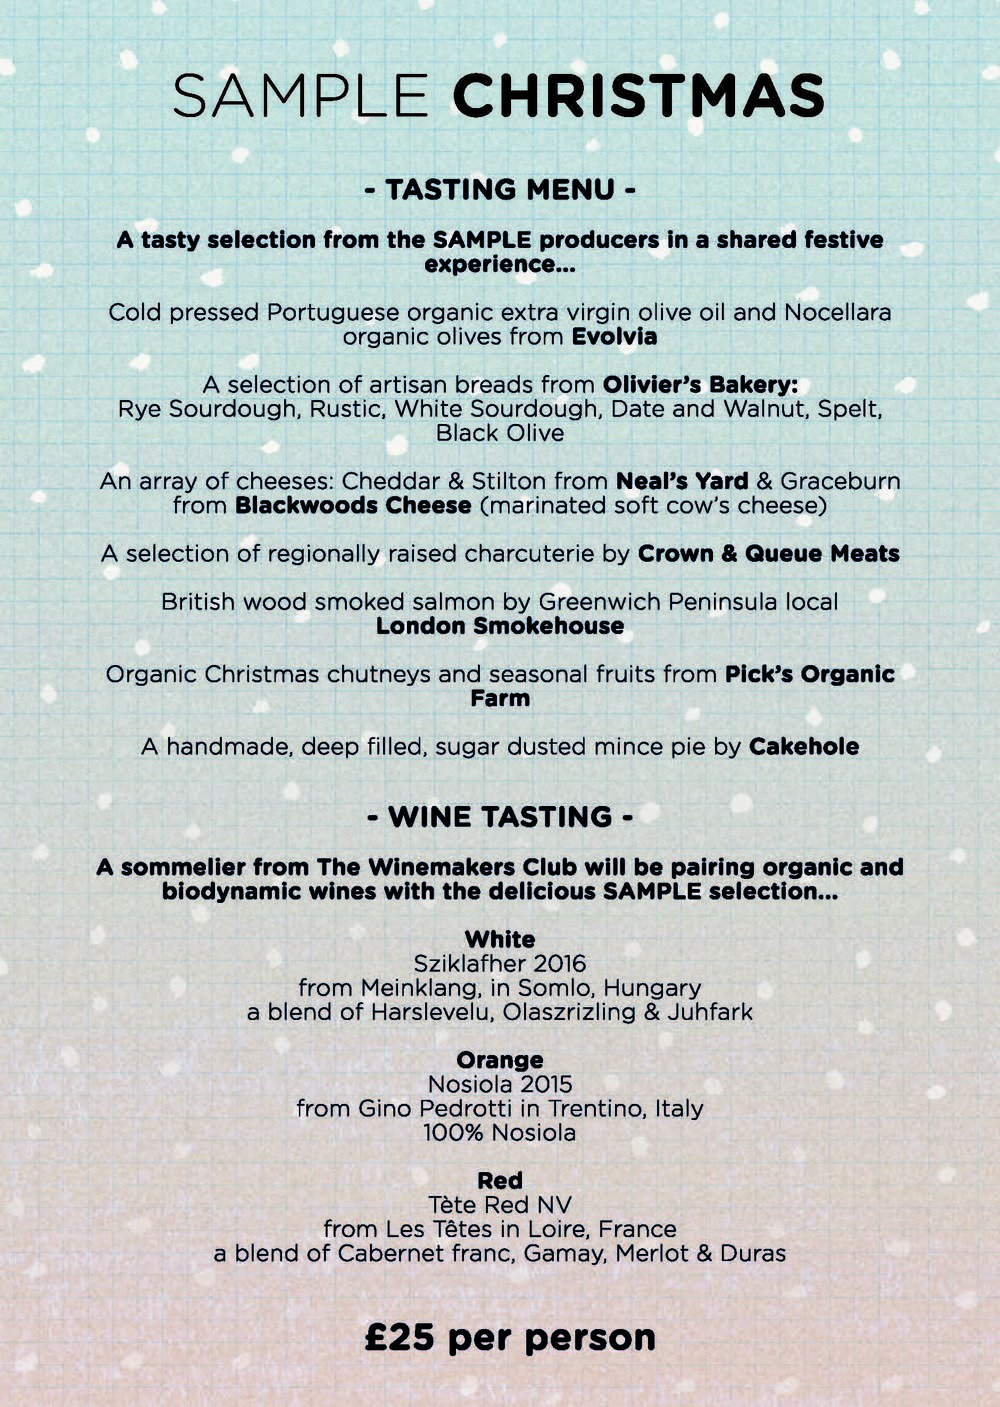 SAMPLE MENU A5 - with mince pie.jpg